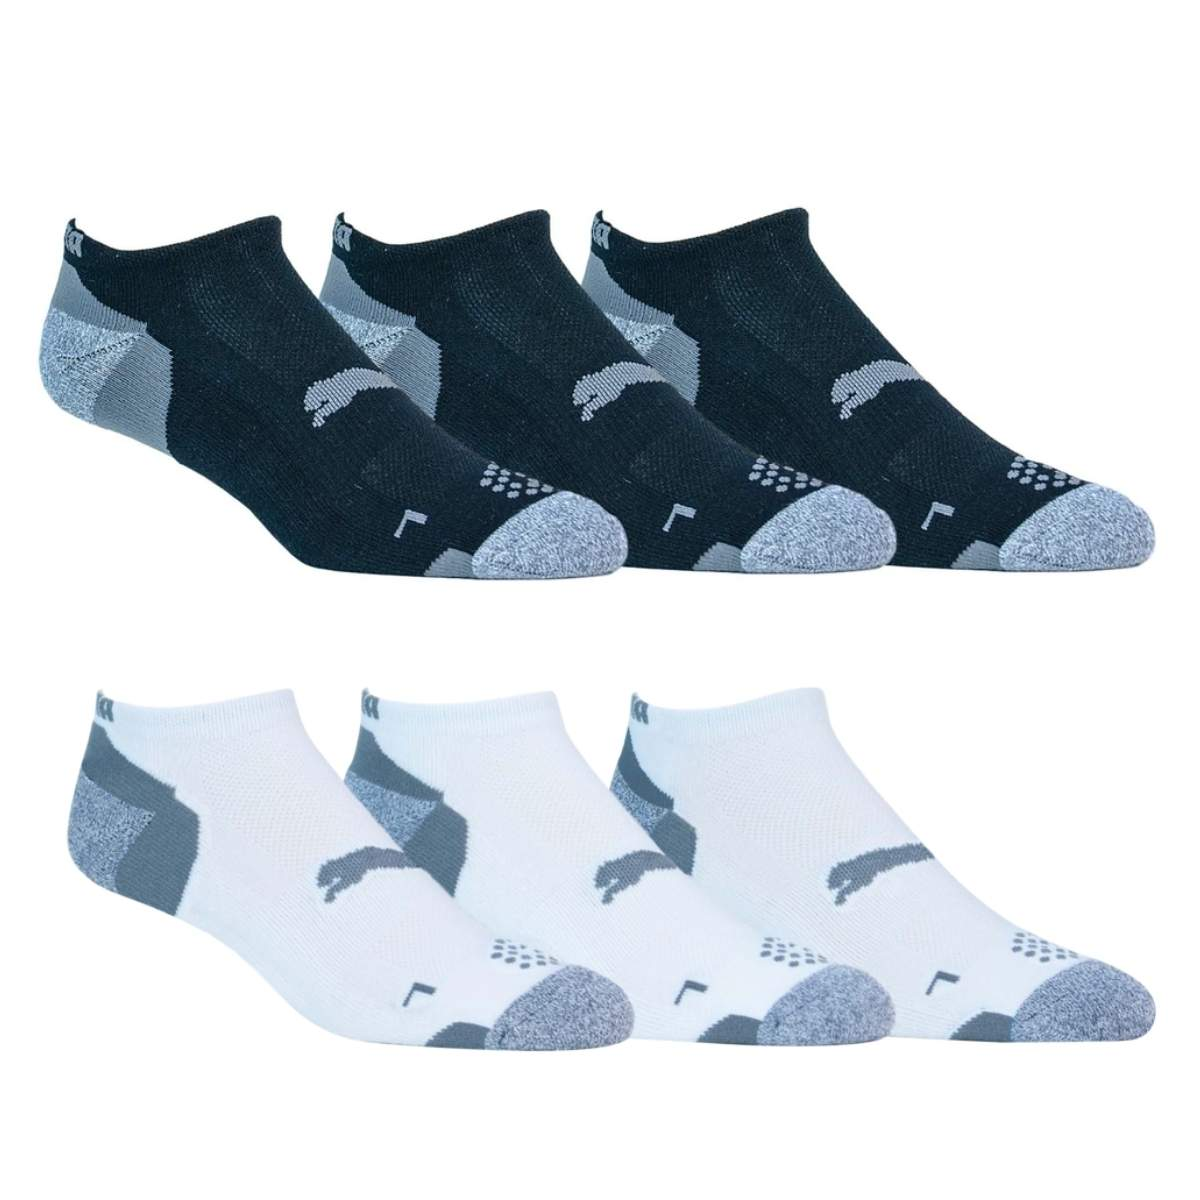 Puma Men's 2021 Pounce Low Cut 3 Pack Socks